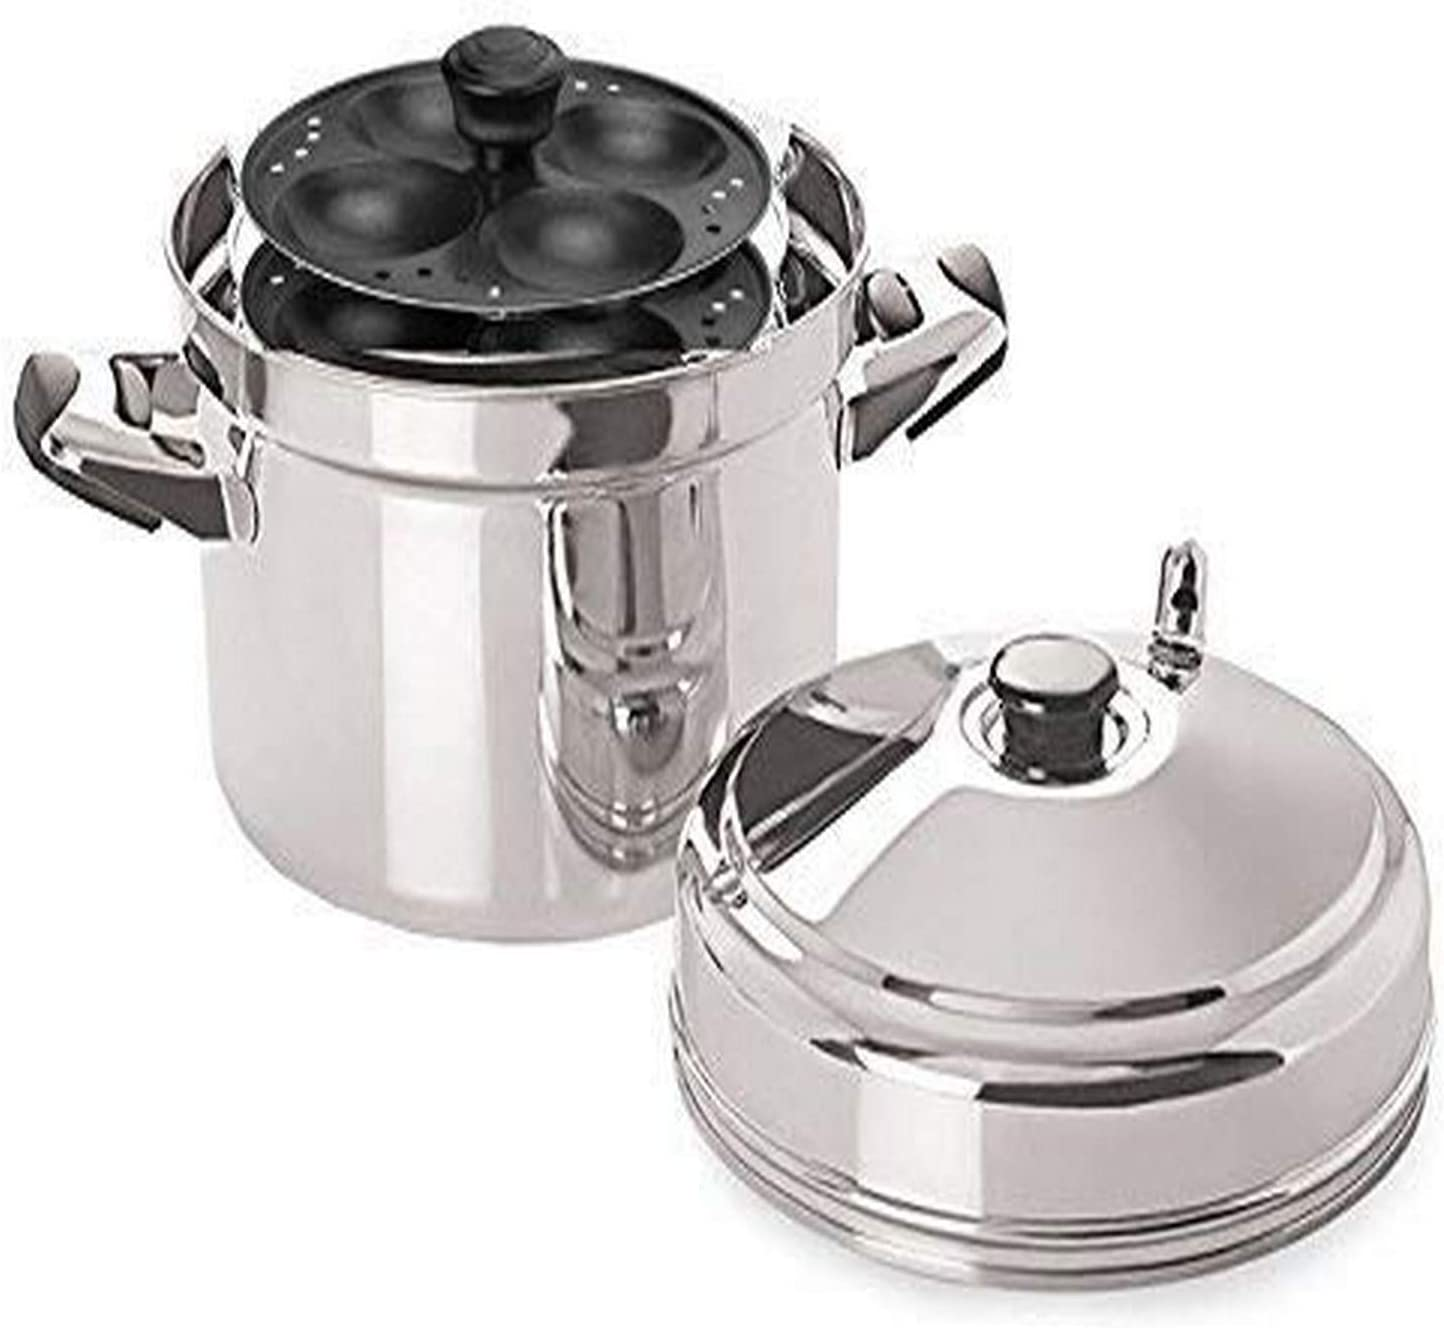 Tabakh Stainless Steel Cooker with Non-Stick 4-Rack Idly Stand, Makes 20, Silver